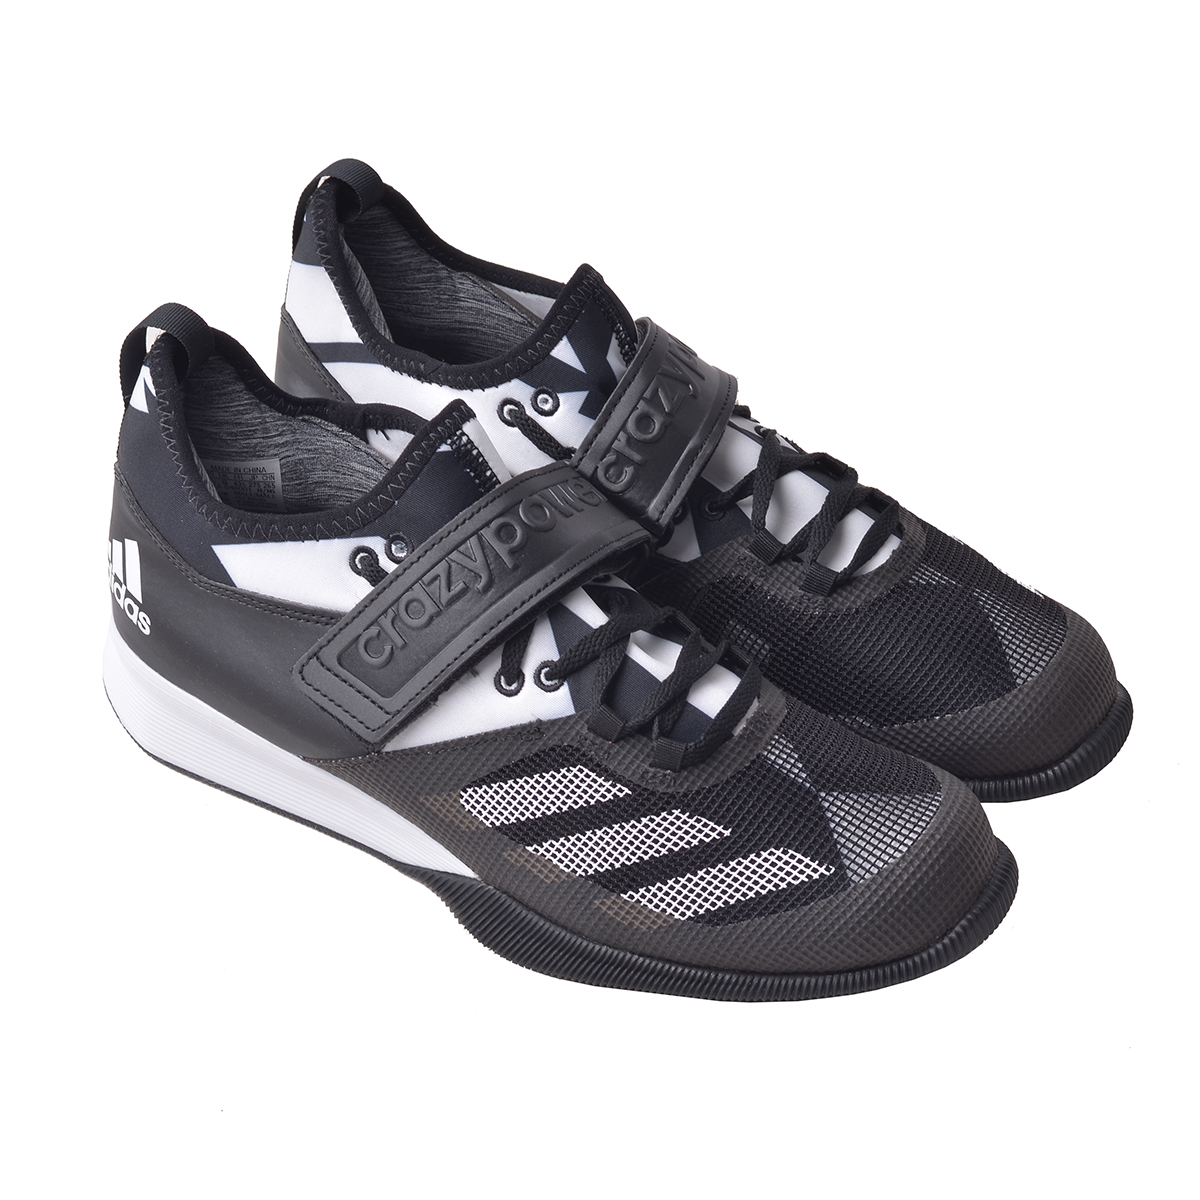 check out 0204e 6936a Adidas Crazy Power Weight Lifting Shoe